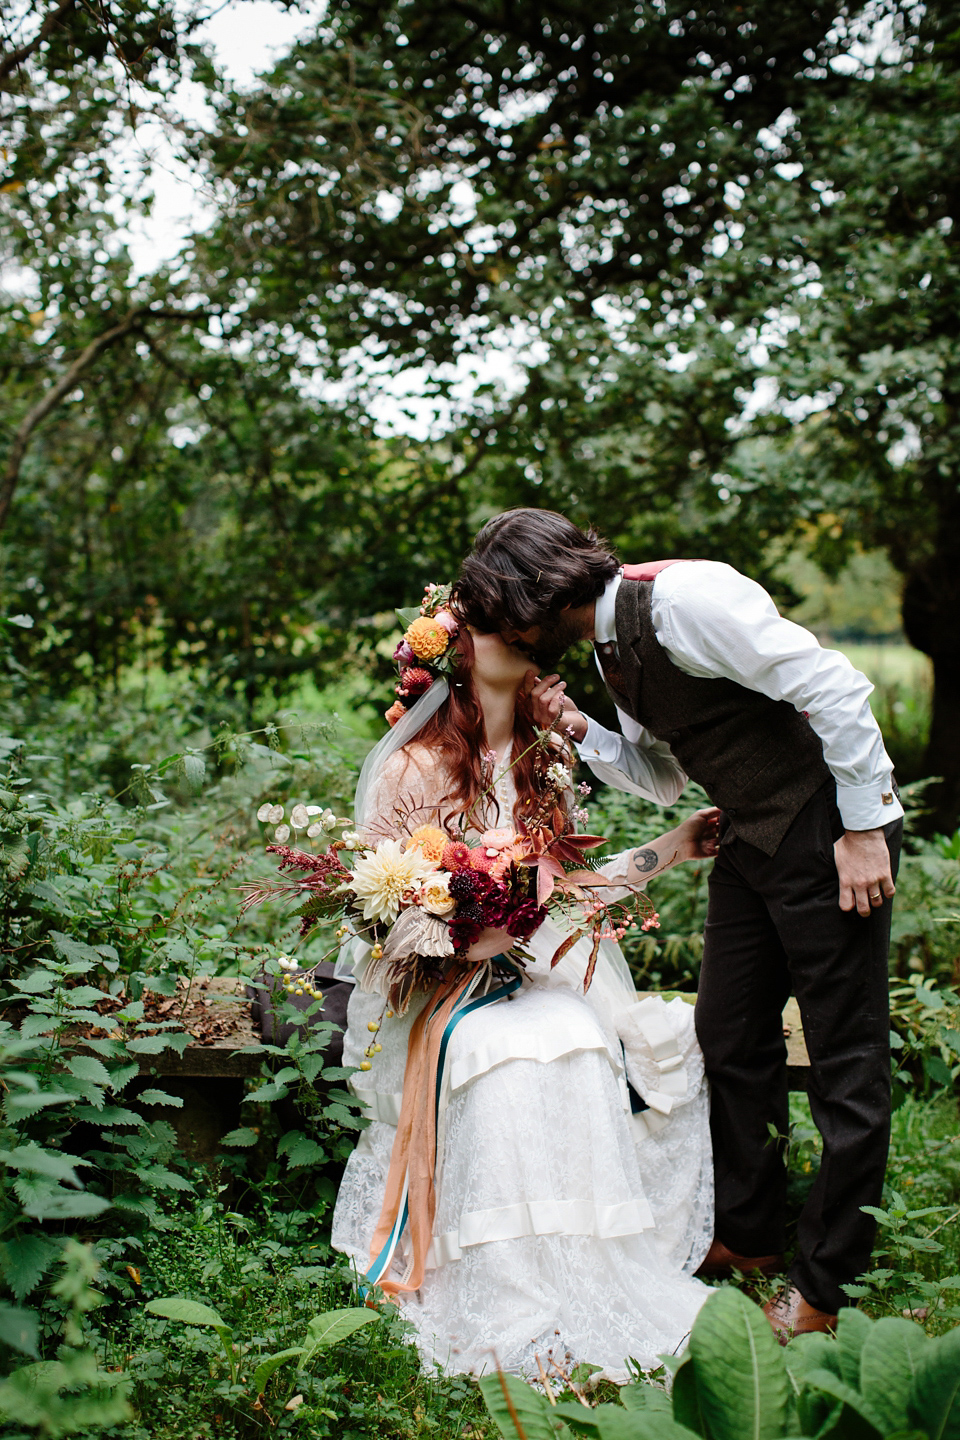 A Humanist Woodland Wedding For An Ethereal Flame-Haired 1940's Bride (Weddings )